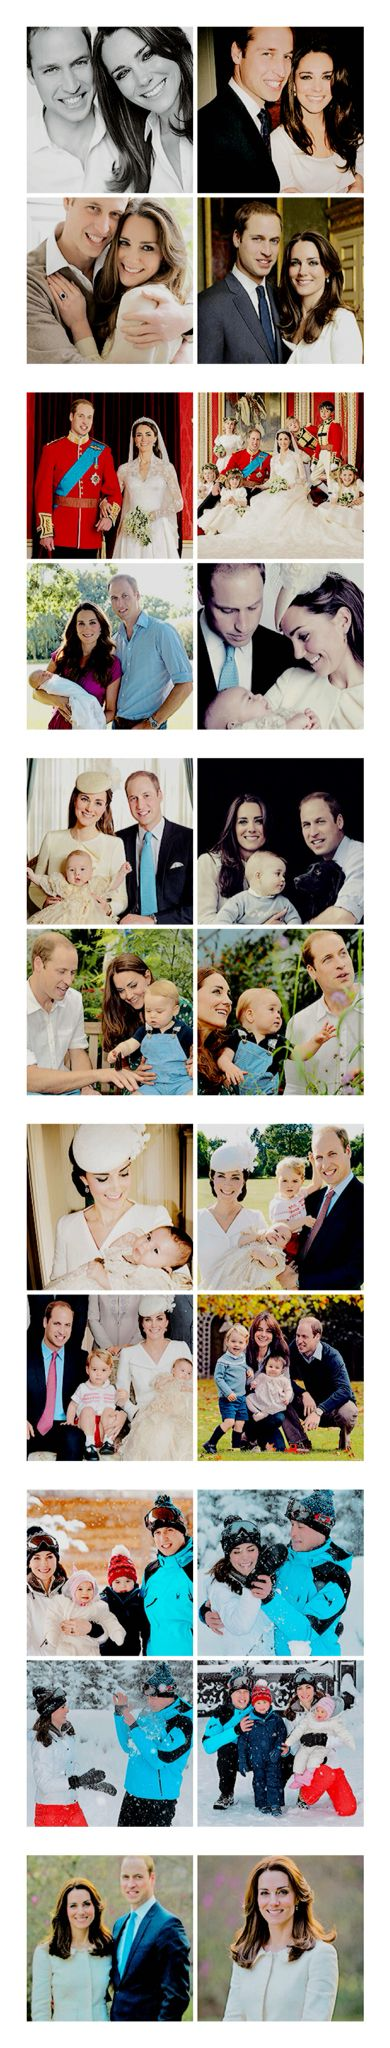 Official Photos of The Duke and Duchess of Cambridge and their children Prince George and Princess Charlotte